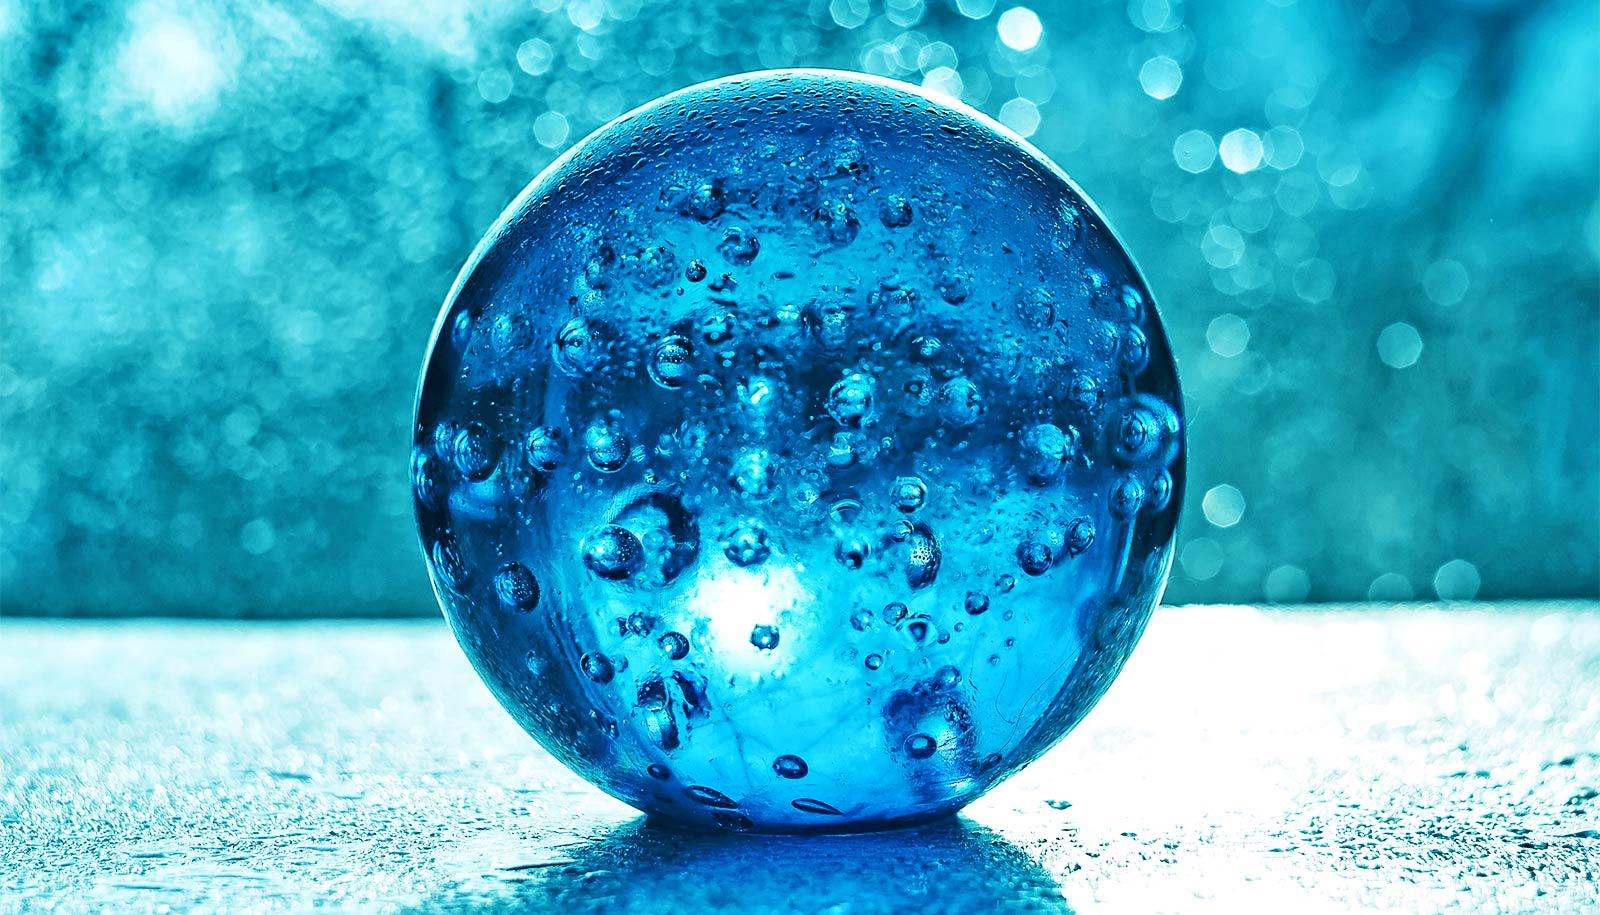 glass ball with bubbles (early Earth concept)